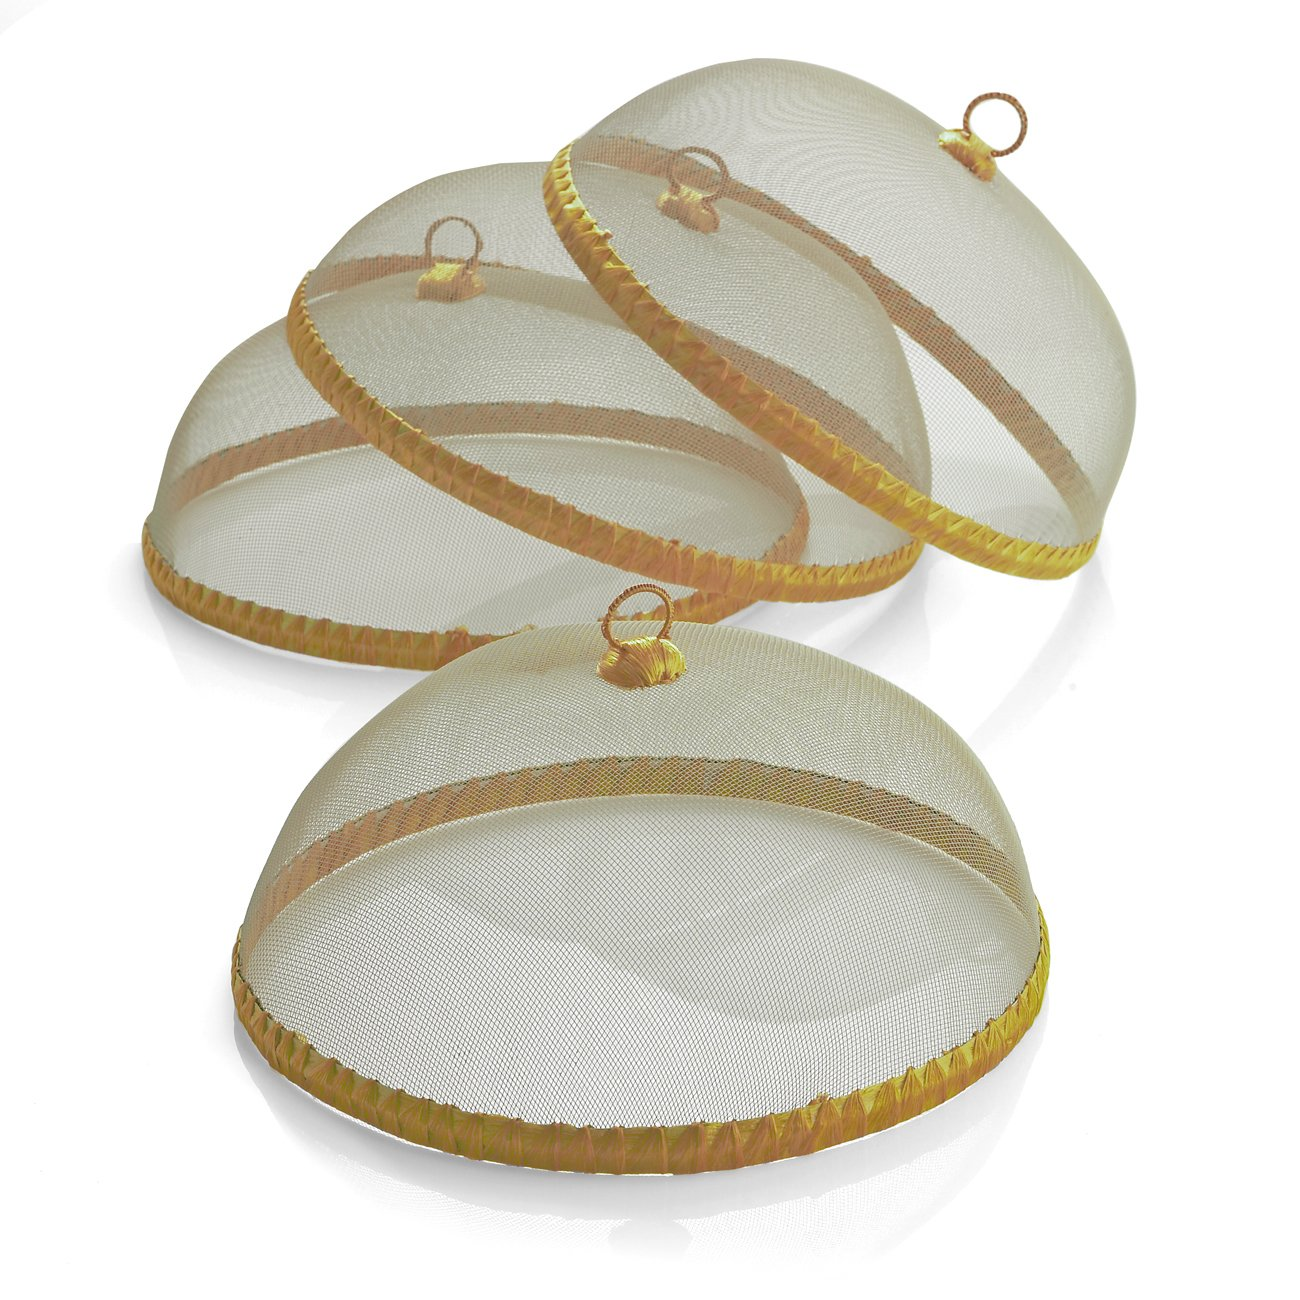 Woodard and Charles WDS041-4AMA Round Food Domes (Set of 4), 14'' x 5-1/2'', Gold